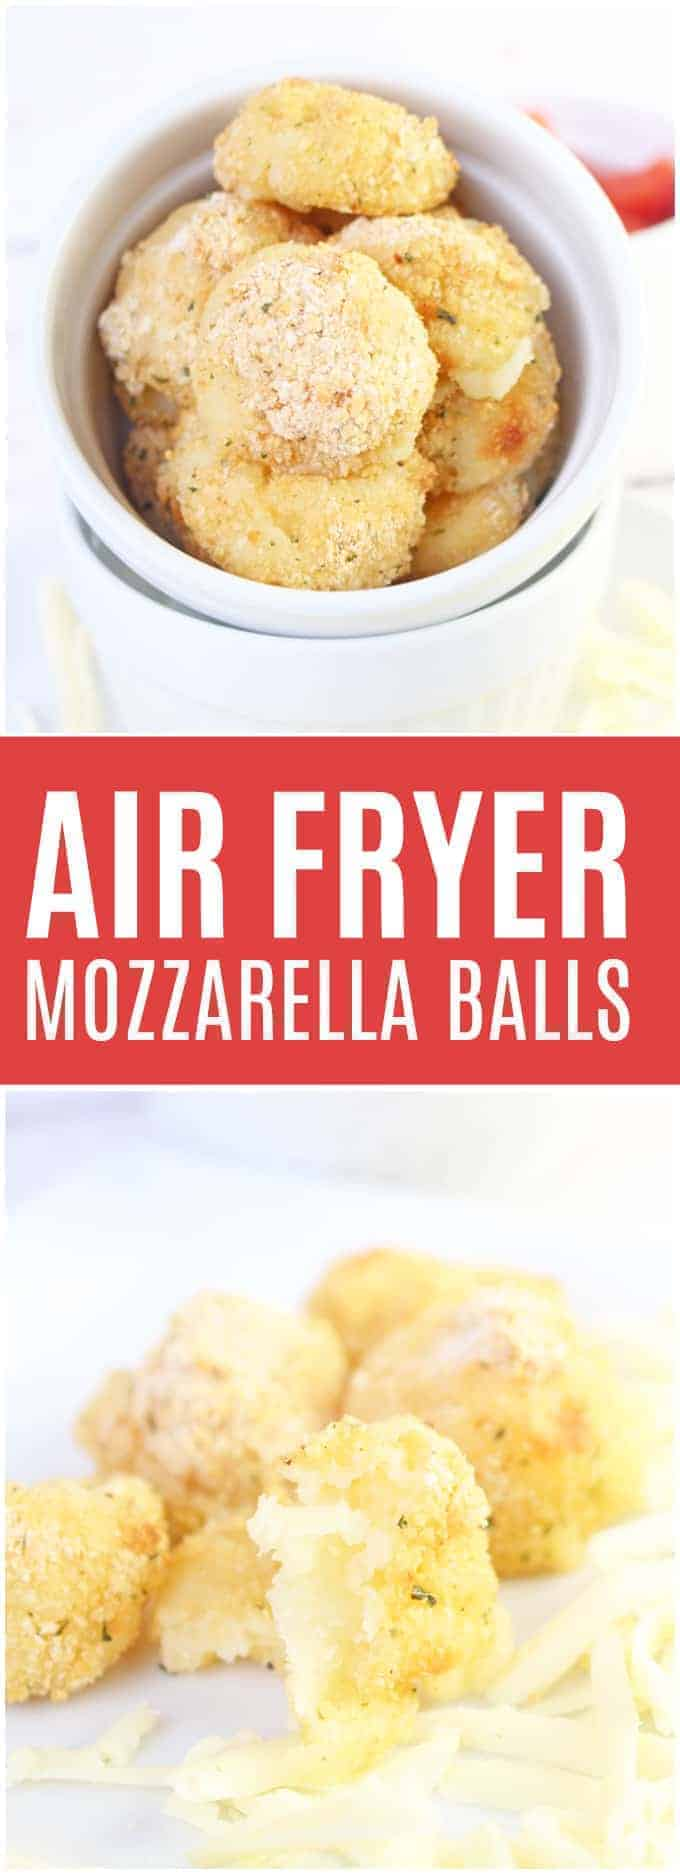 Air Fryer Mozzarella Balls - These homemade cheesesticks are bite sized, super seasoned, and made in minutes! A great make-ahead snack or appetizer.